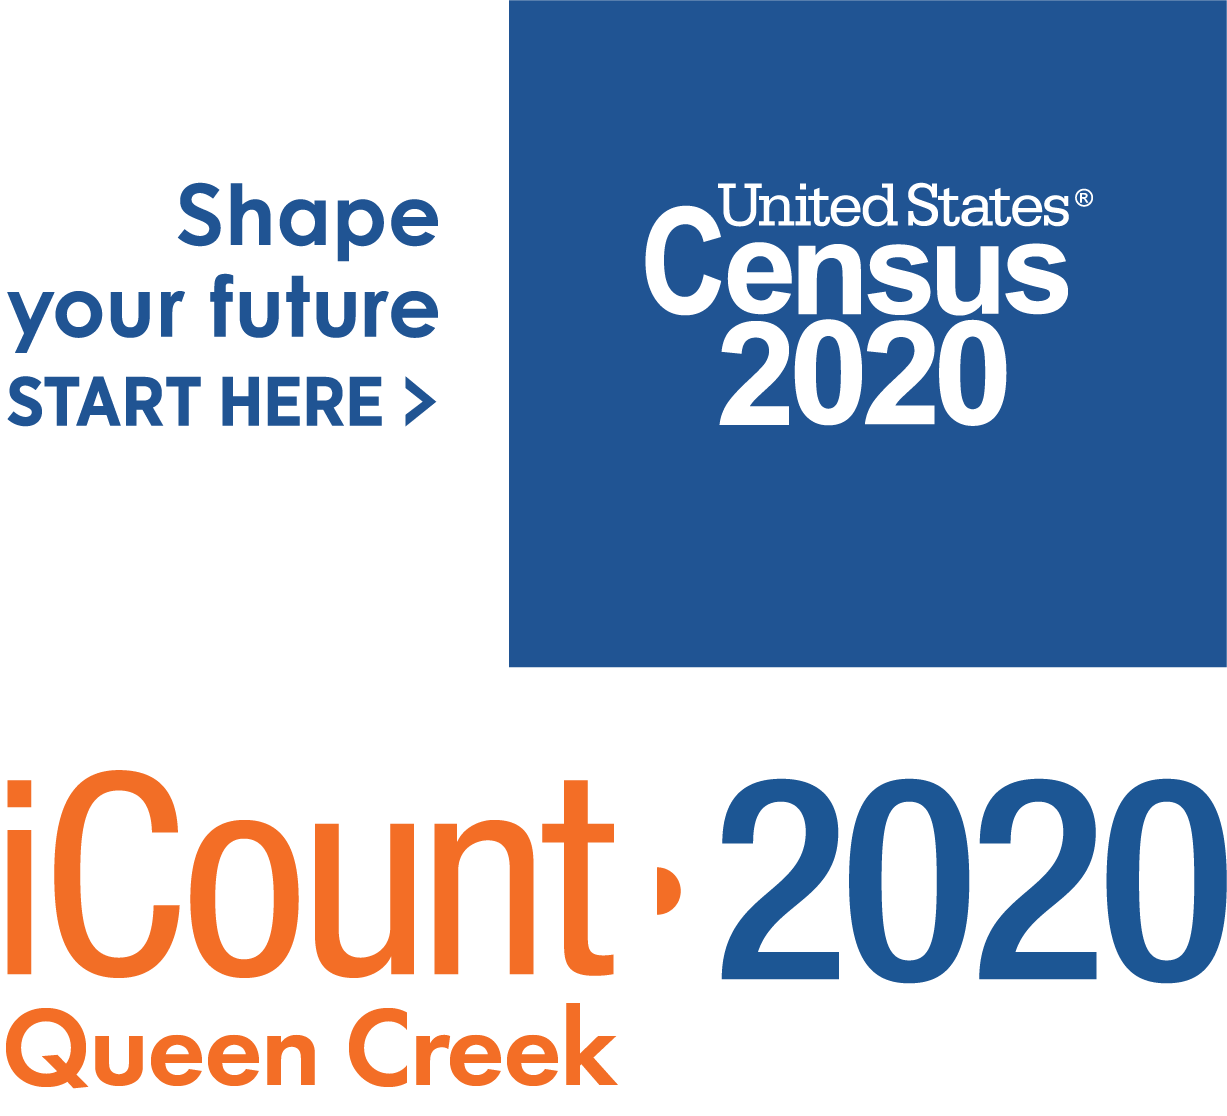 Census 2020 Queen Creek Logo